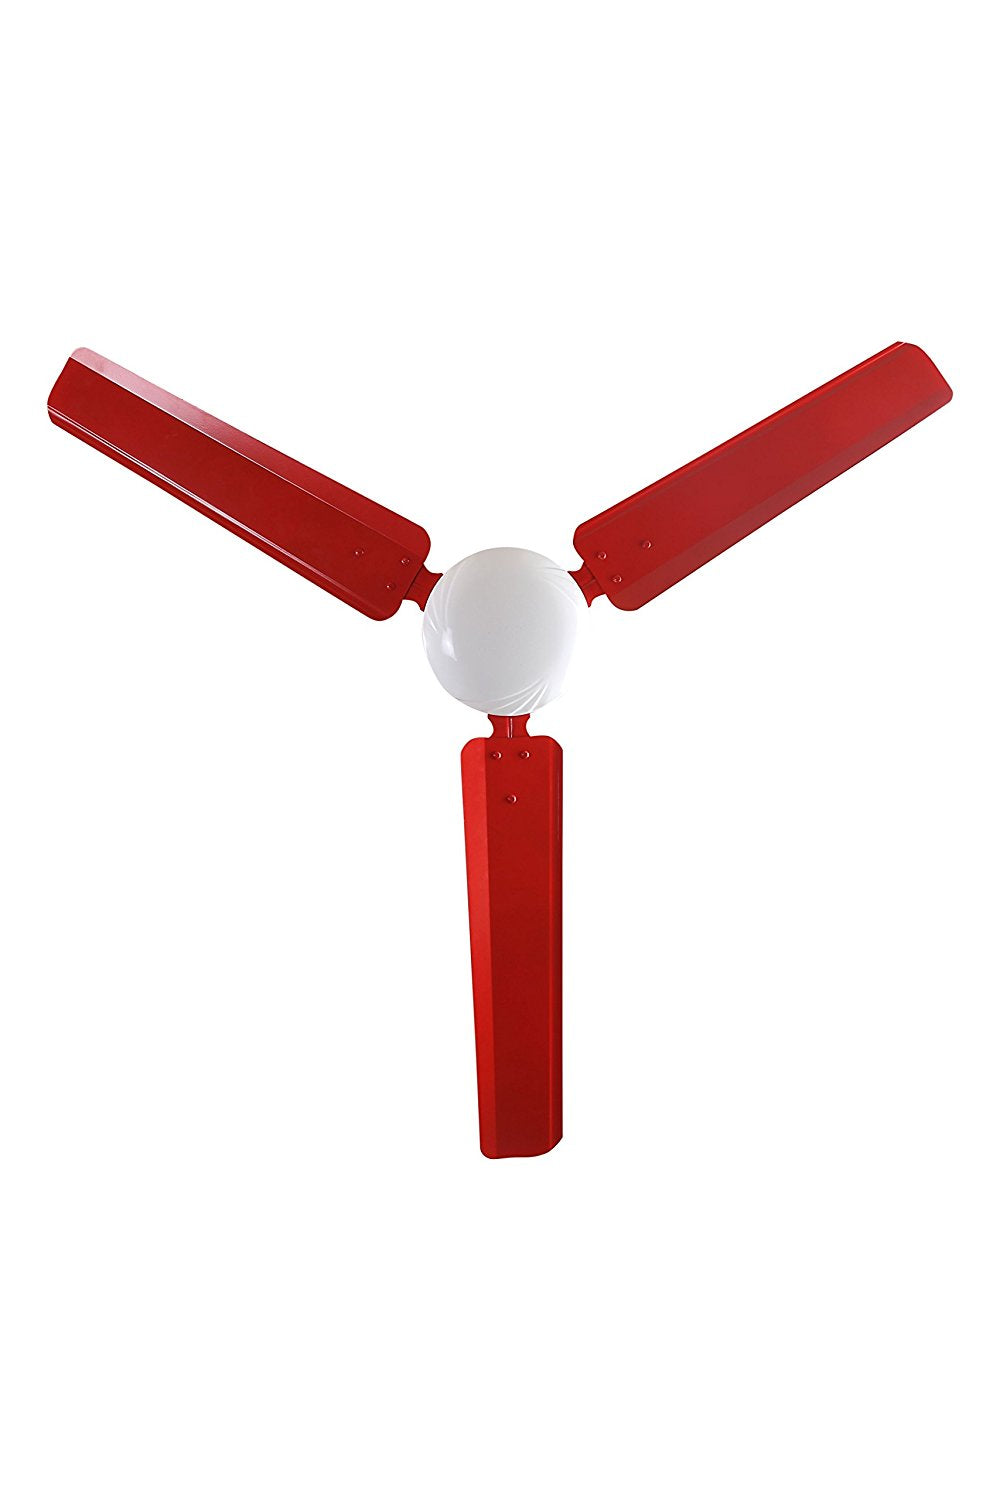 i-Flo Zoom 1200mm Dust Proof Ceiling fan,Red